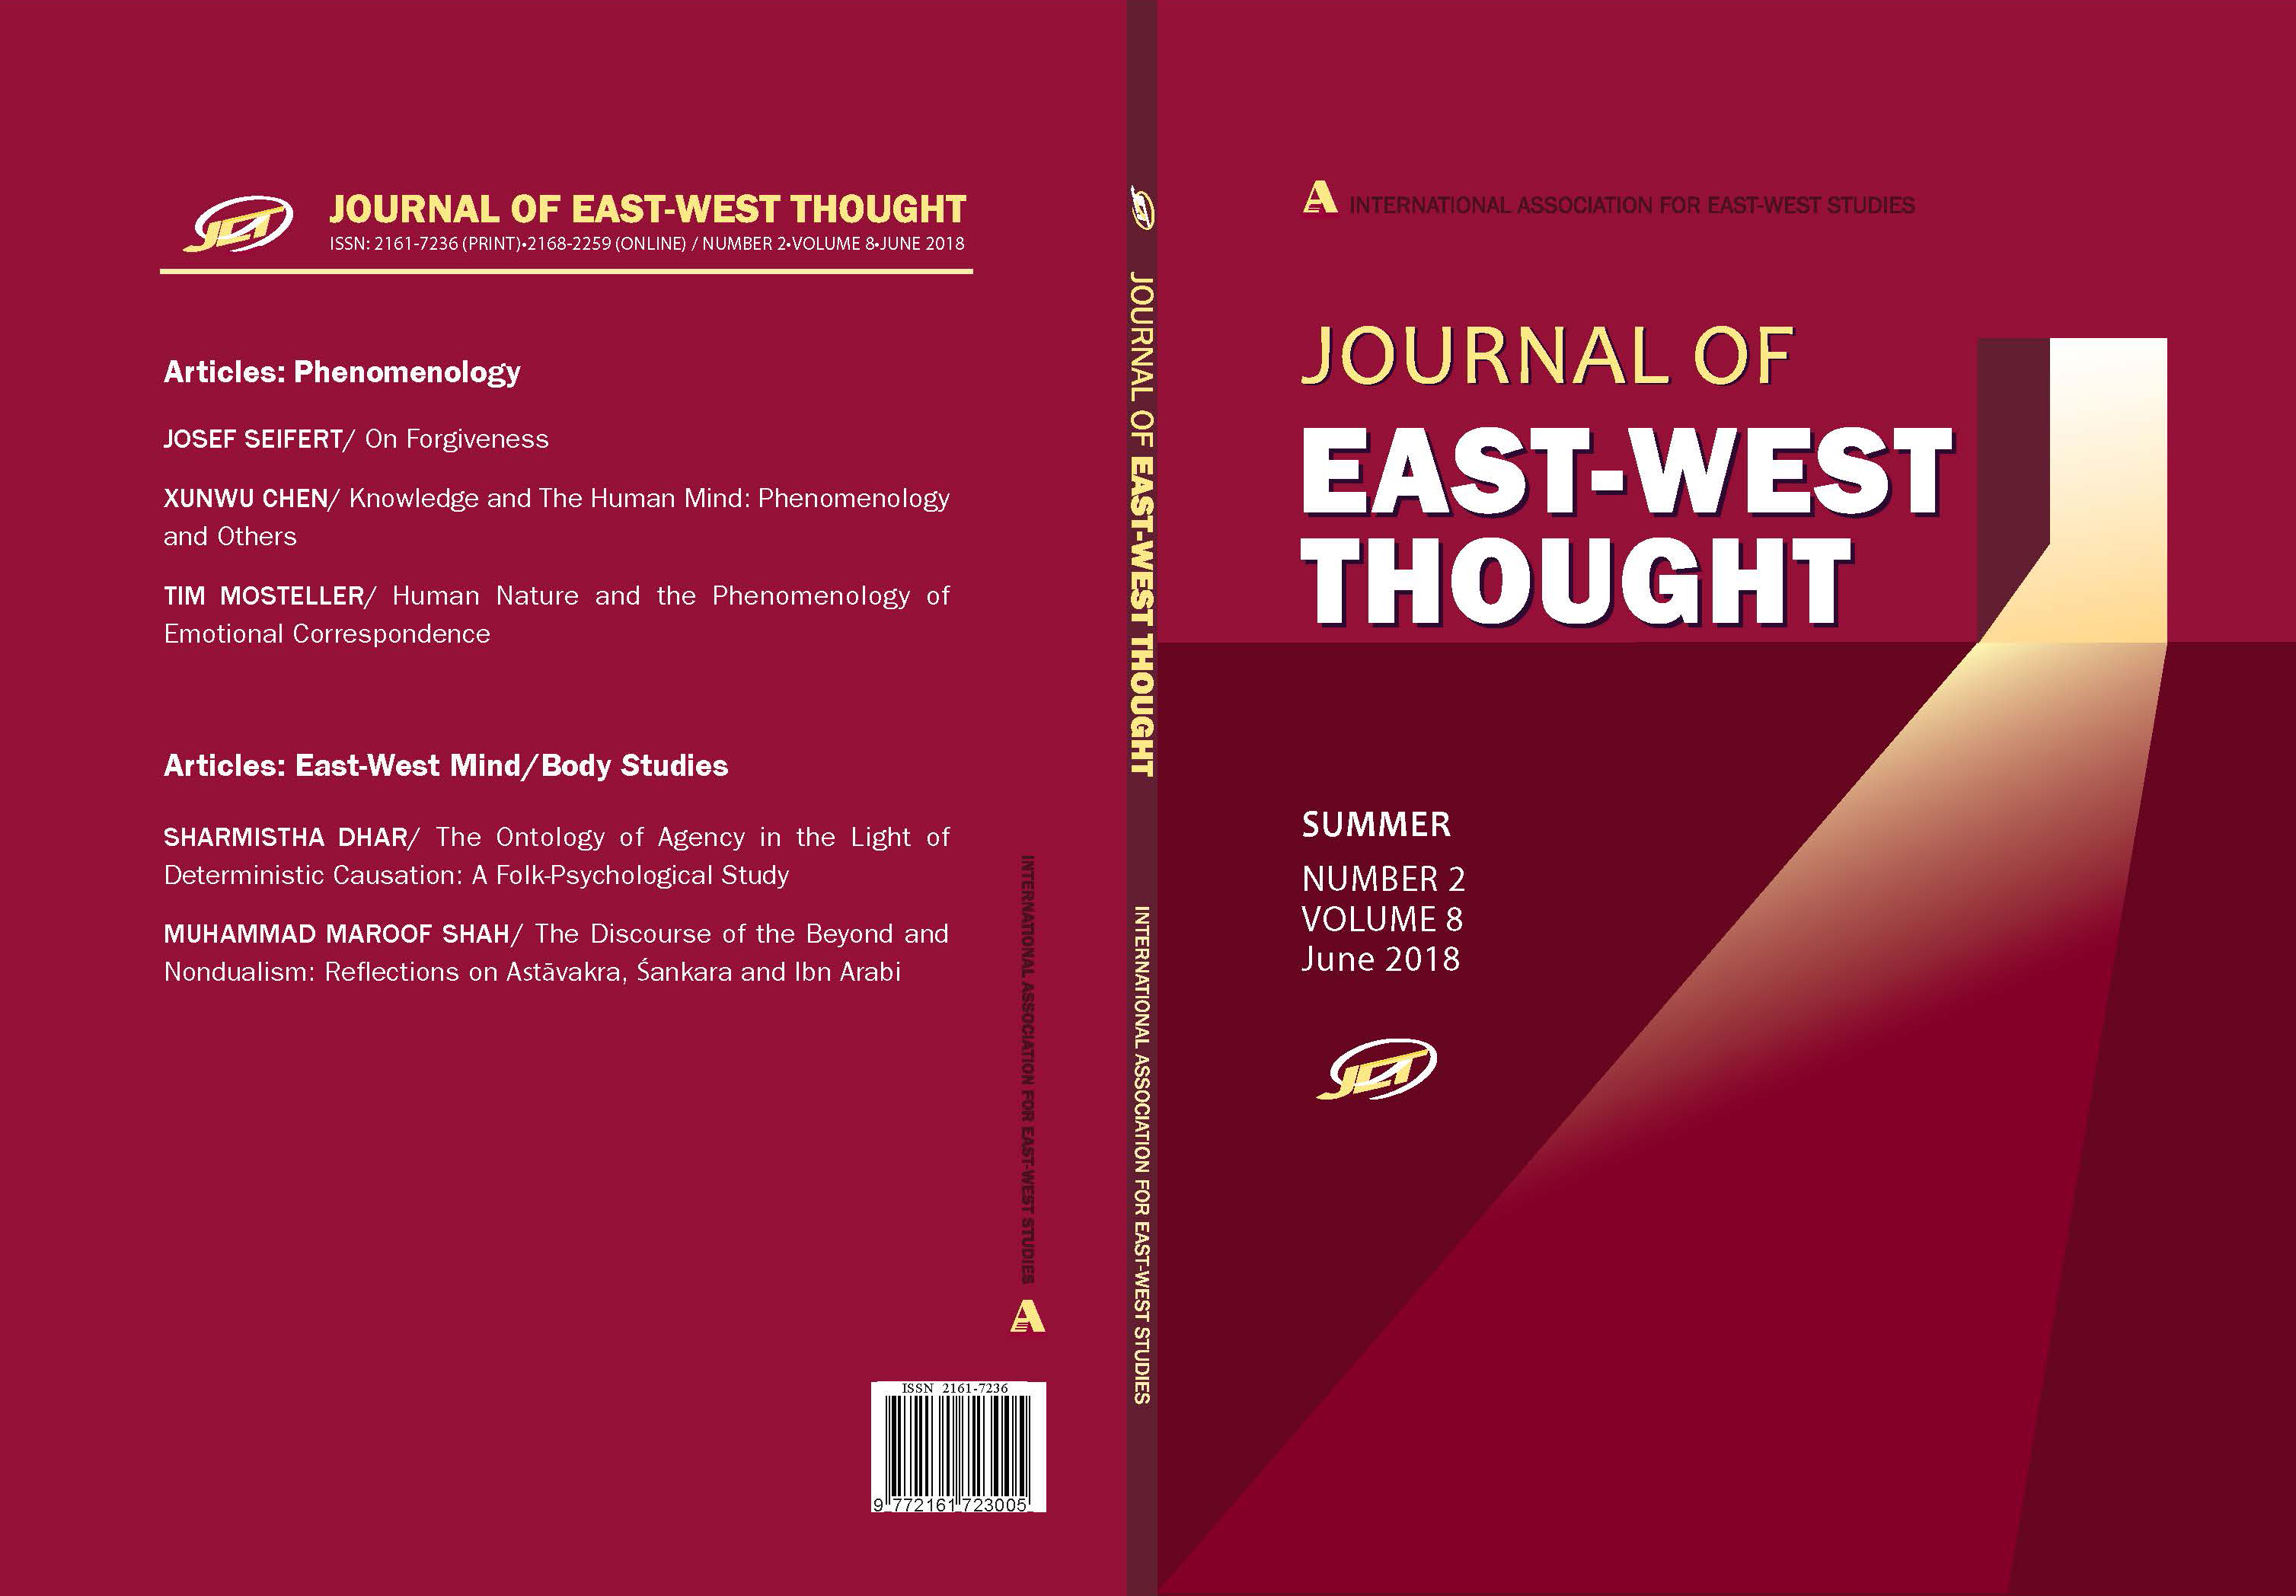 Front and back cover of the Journal of East West Thought Volume 8, Number 2, 2018